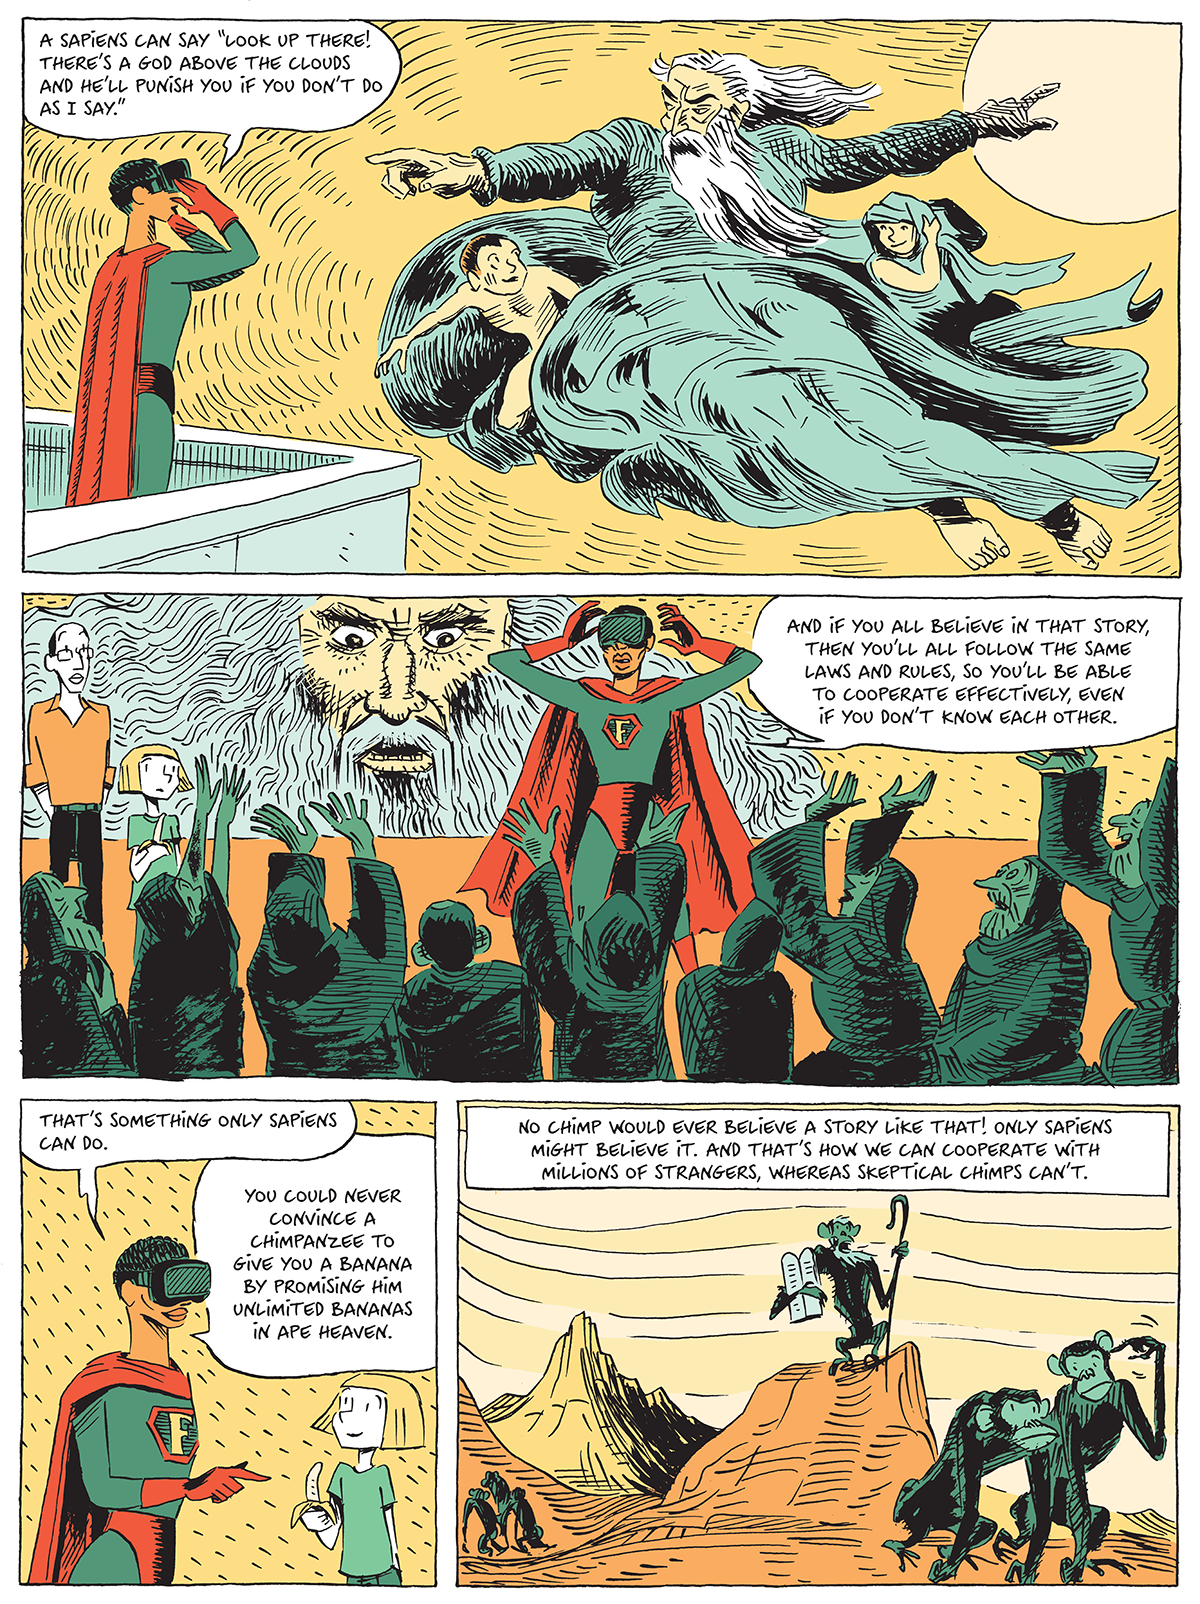 Comic page of god and monkeys flyer